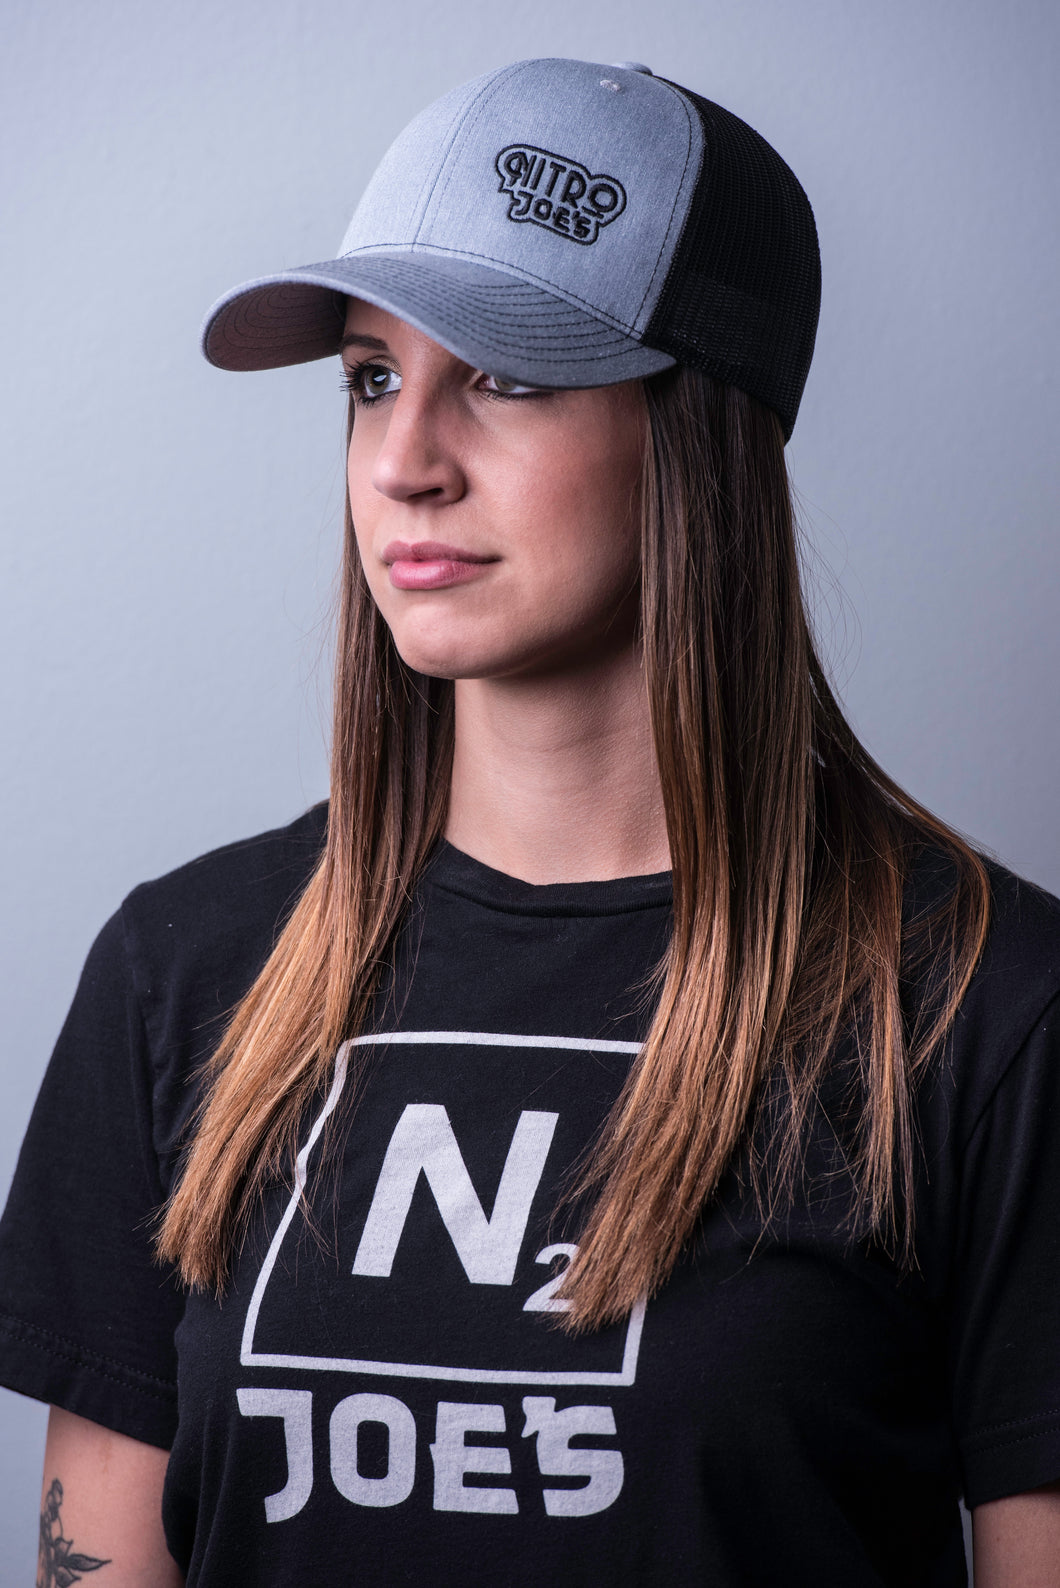 NJ Logo Trucker Hat